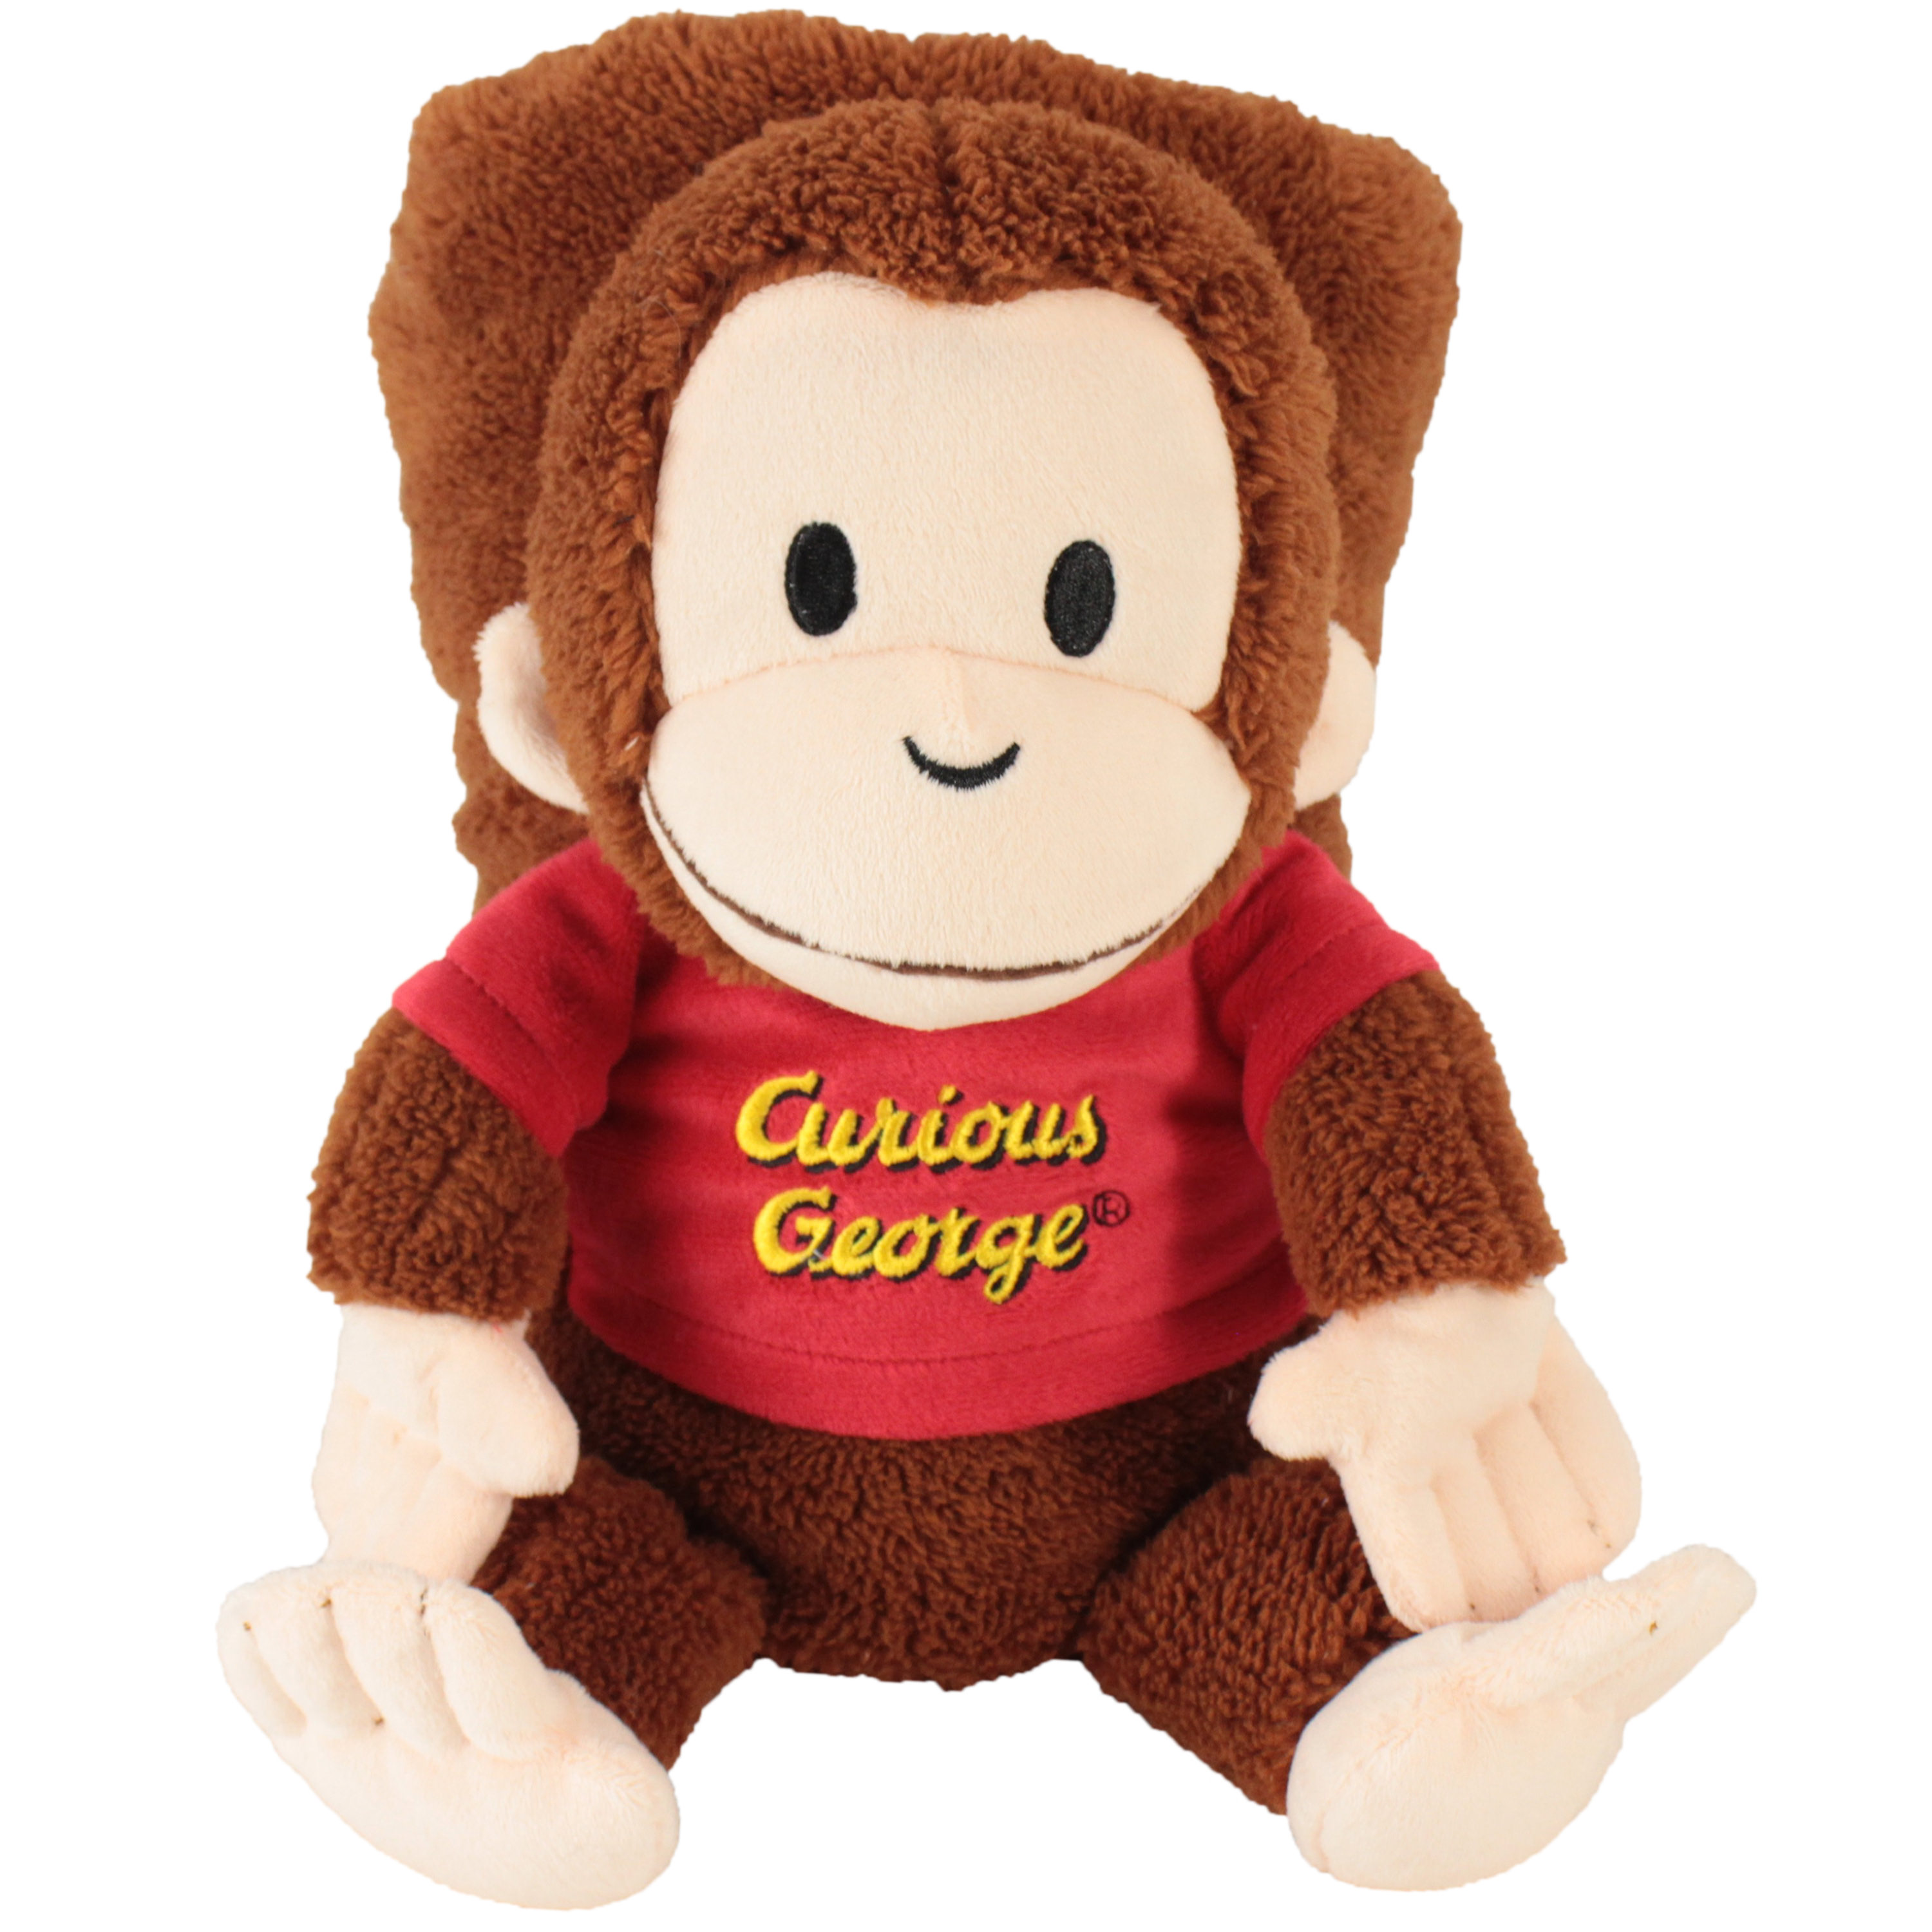 "My Pet Blankie's Curious George Blankie | Soft and Cuddly Plush Blankie | 26"" x 39"" 